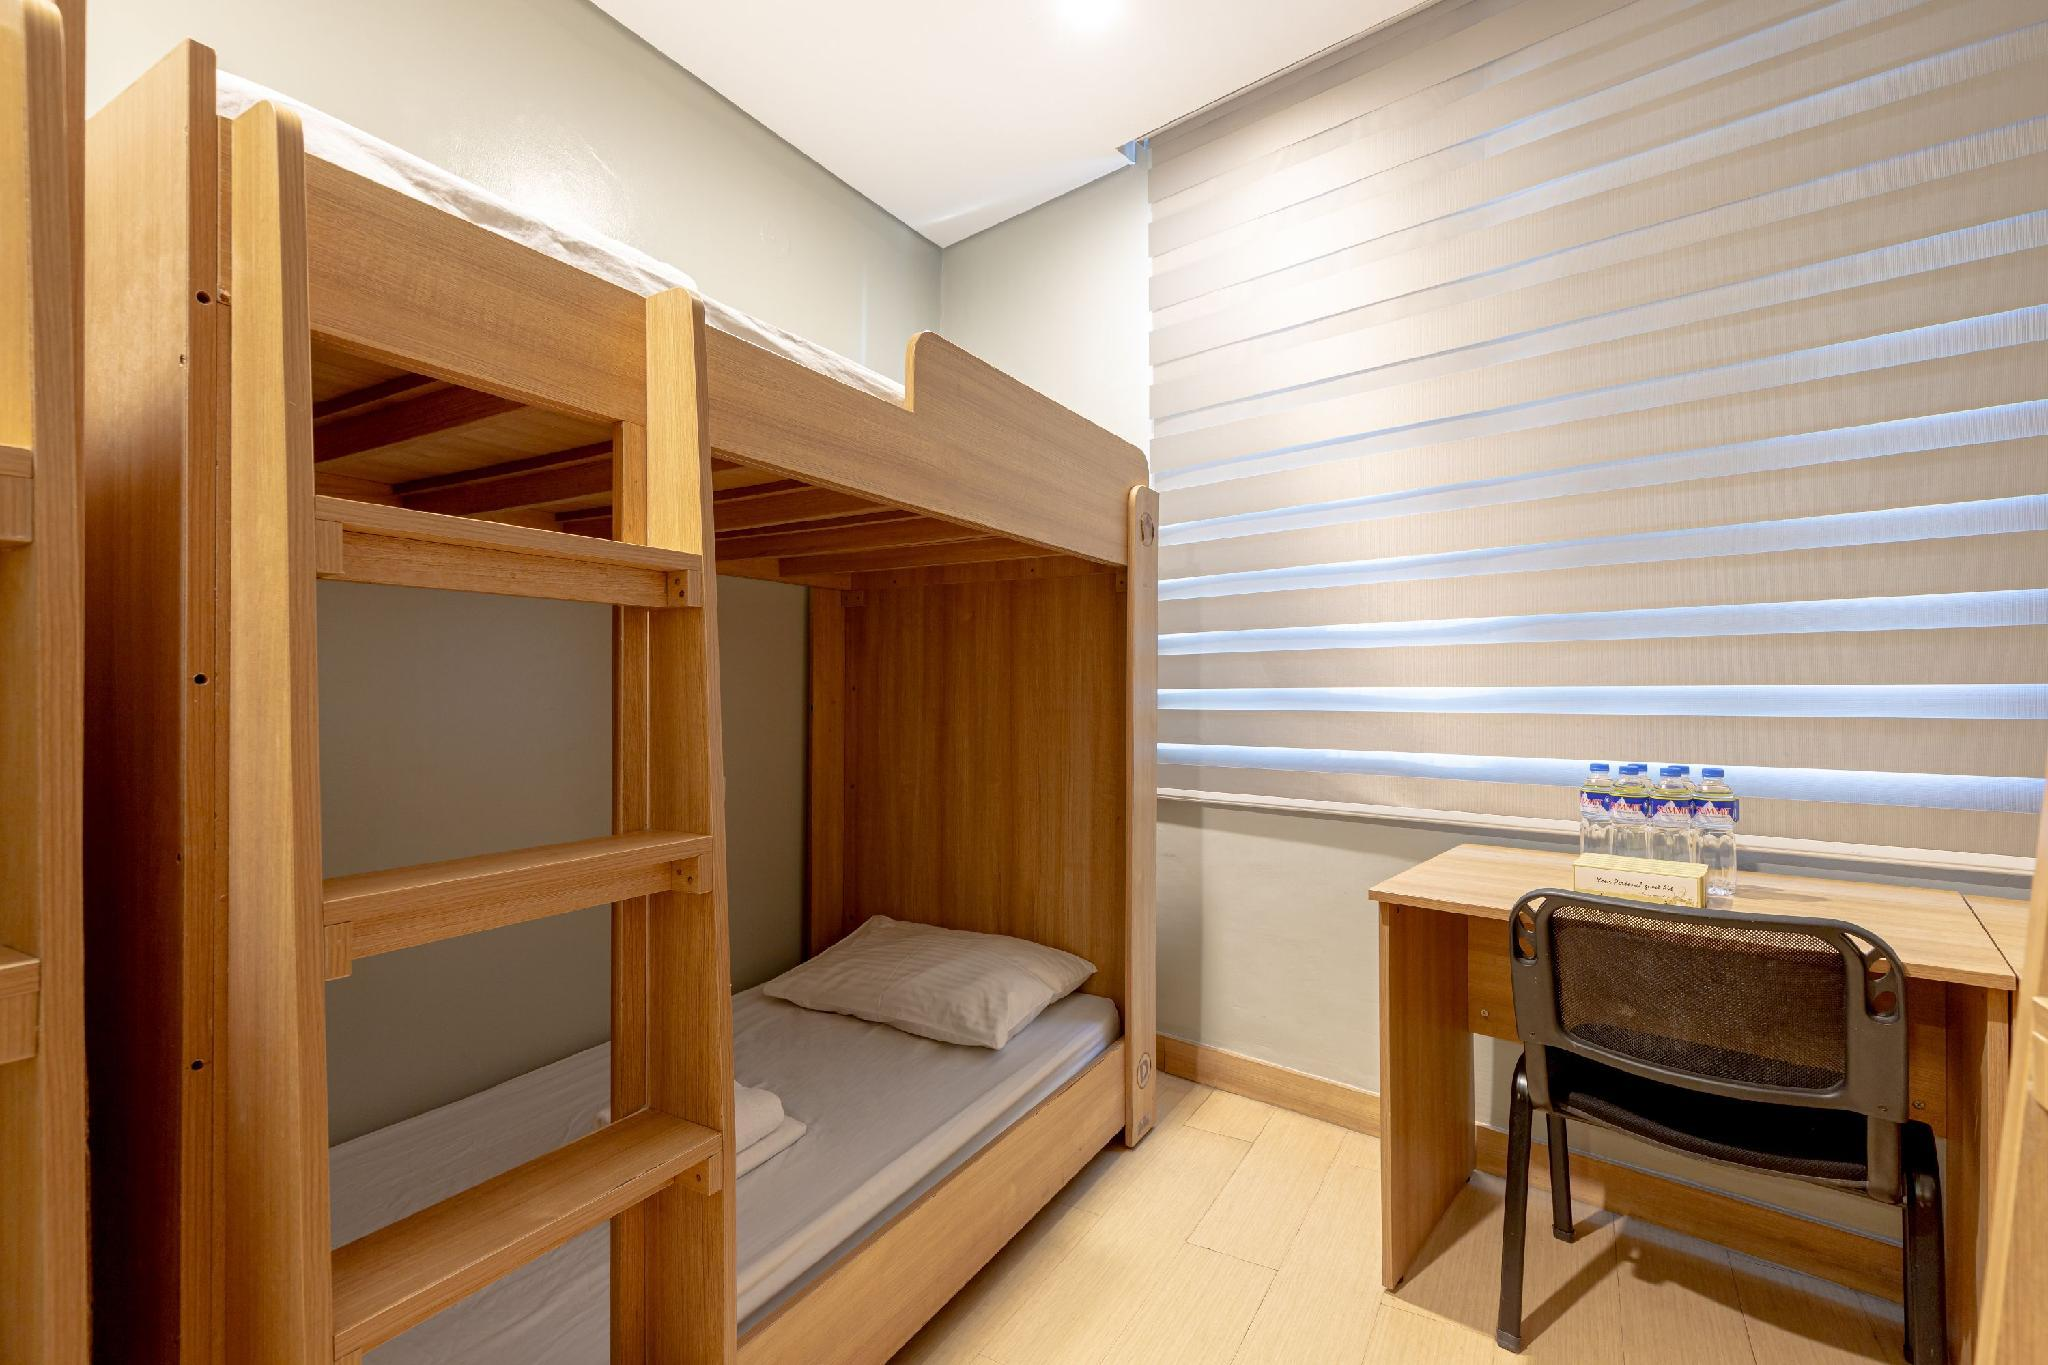 Room for 6 People with Bunk Beds